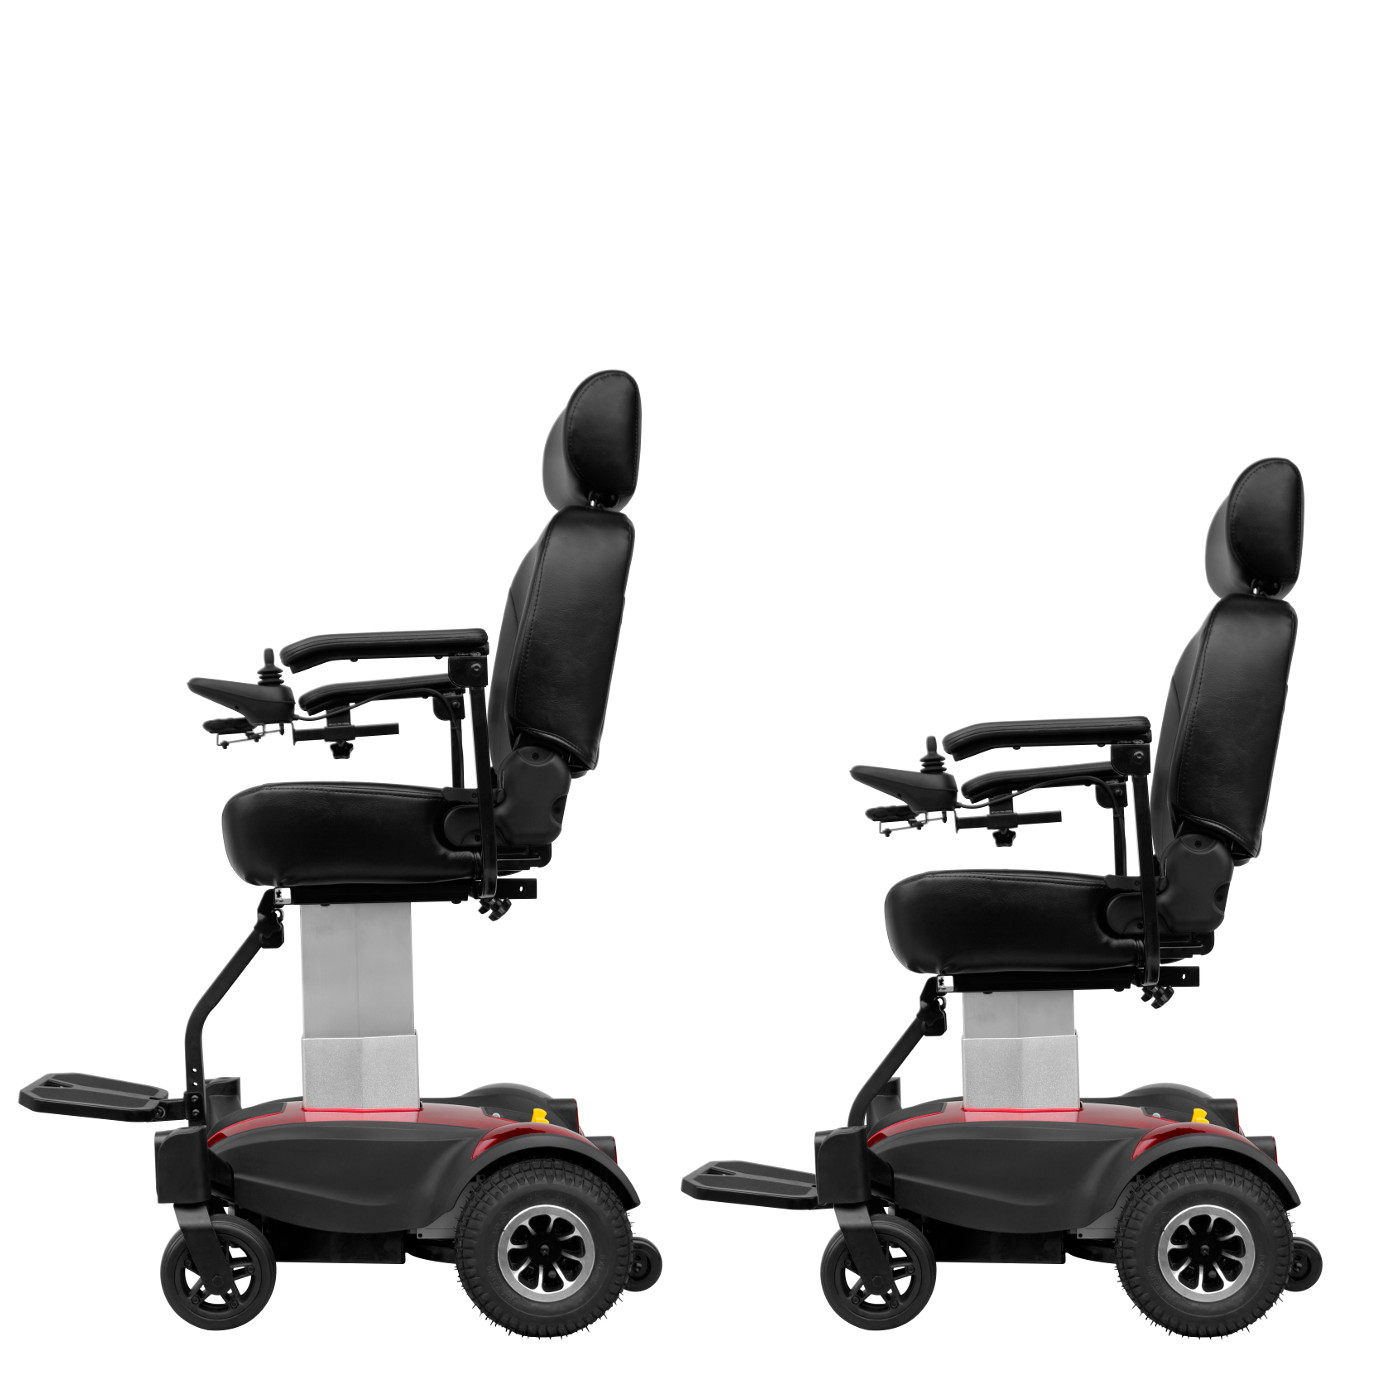 Electric Wheelchair - Solax - Seat Lift LAUNCH SPECIAL, While Stocks Last.